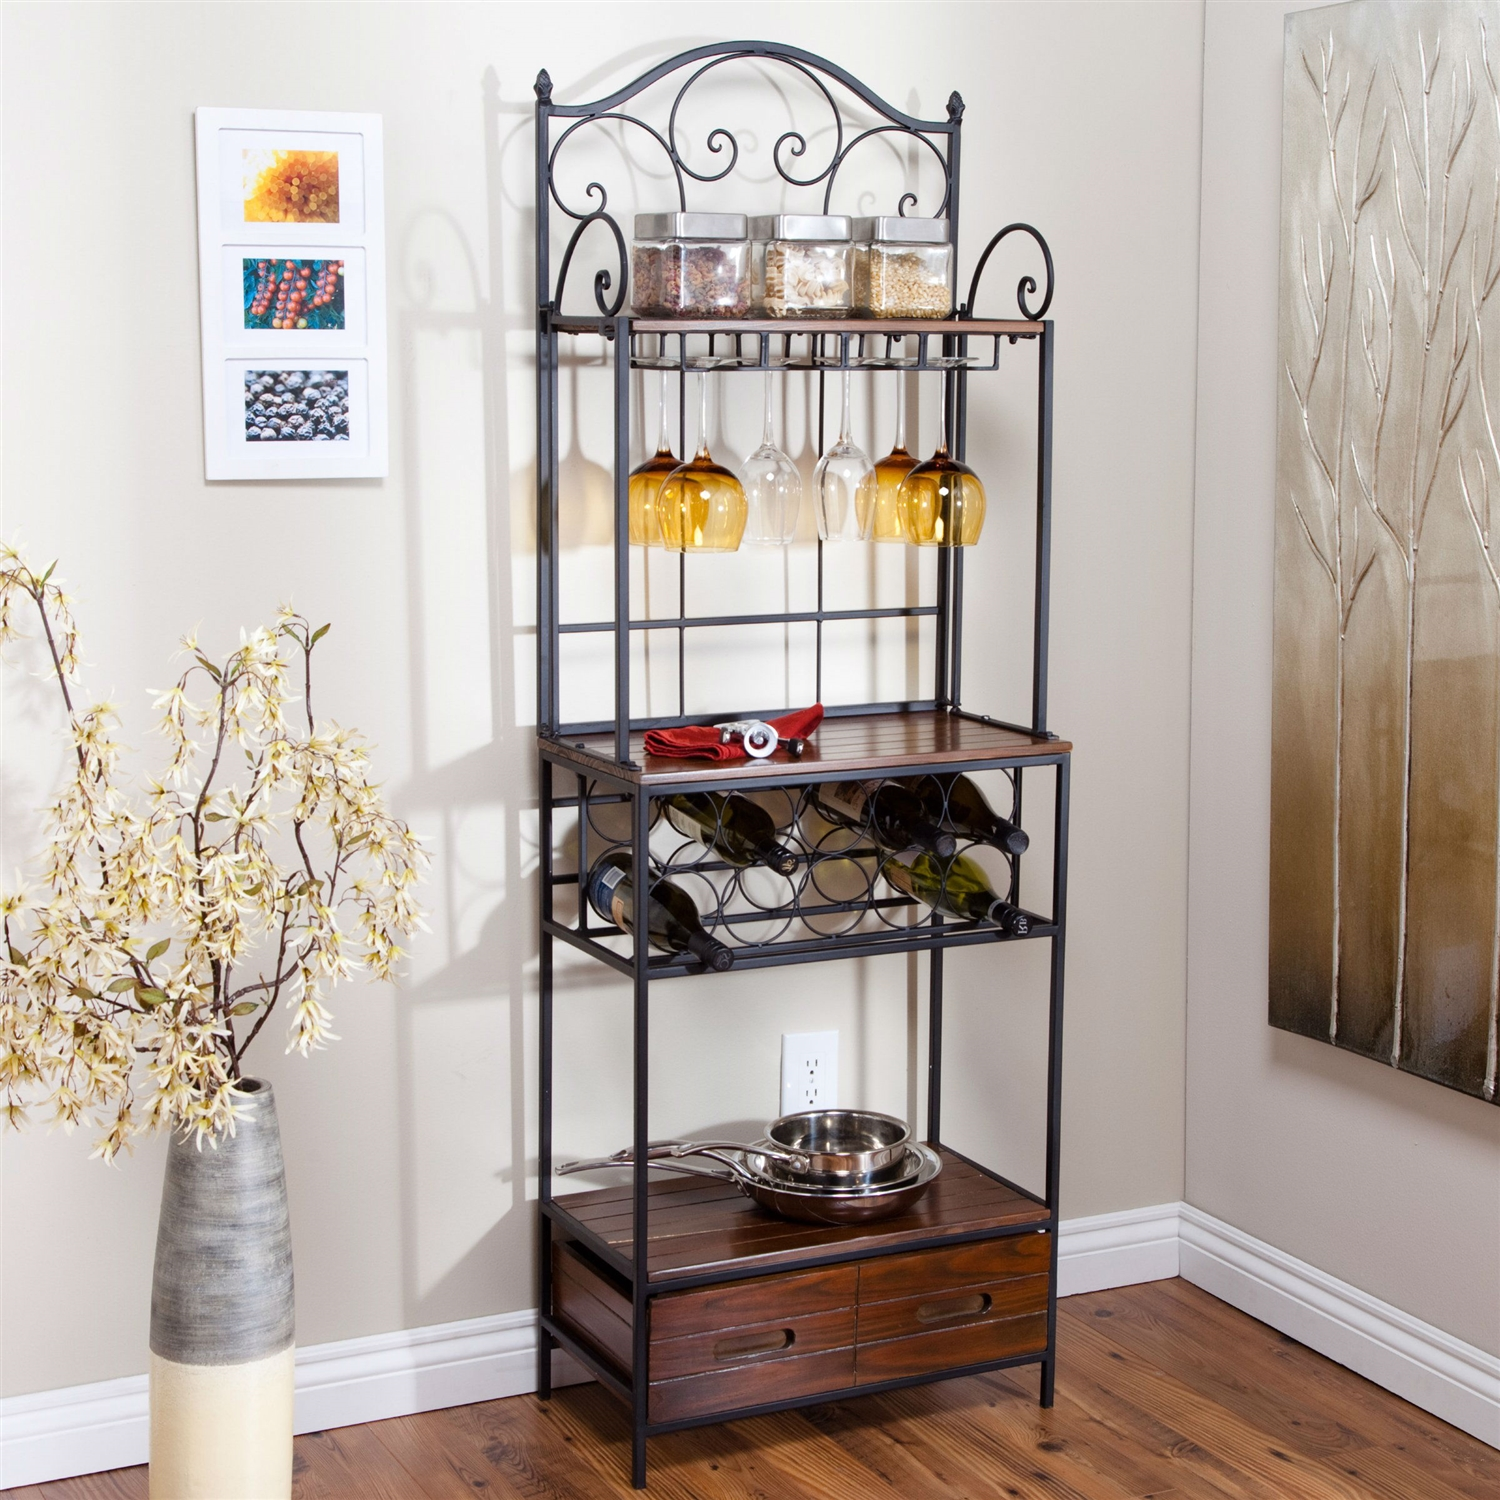 Metal Wine Storage Racks Sturdy Metal And Wood Bakers Rack With Wine Glass And Bottle Storage